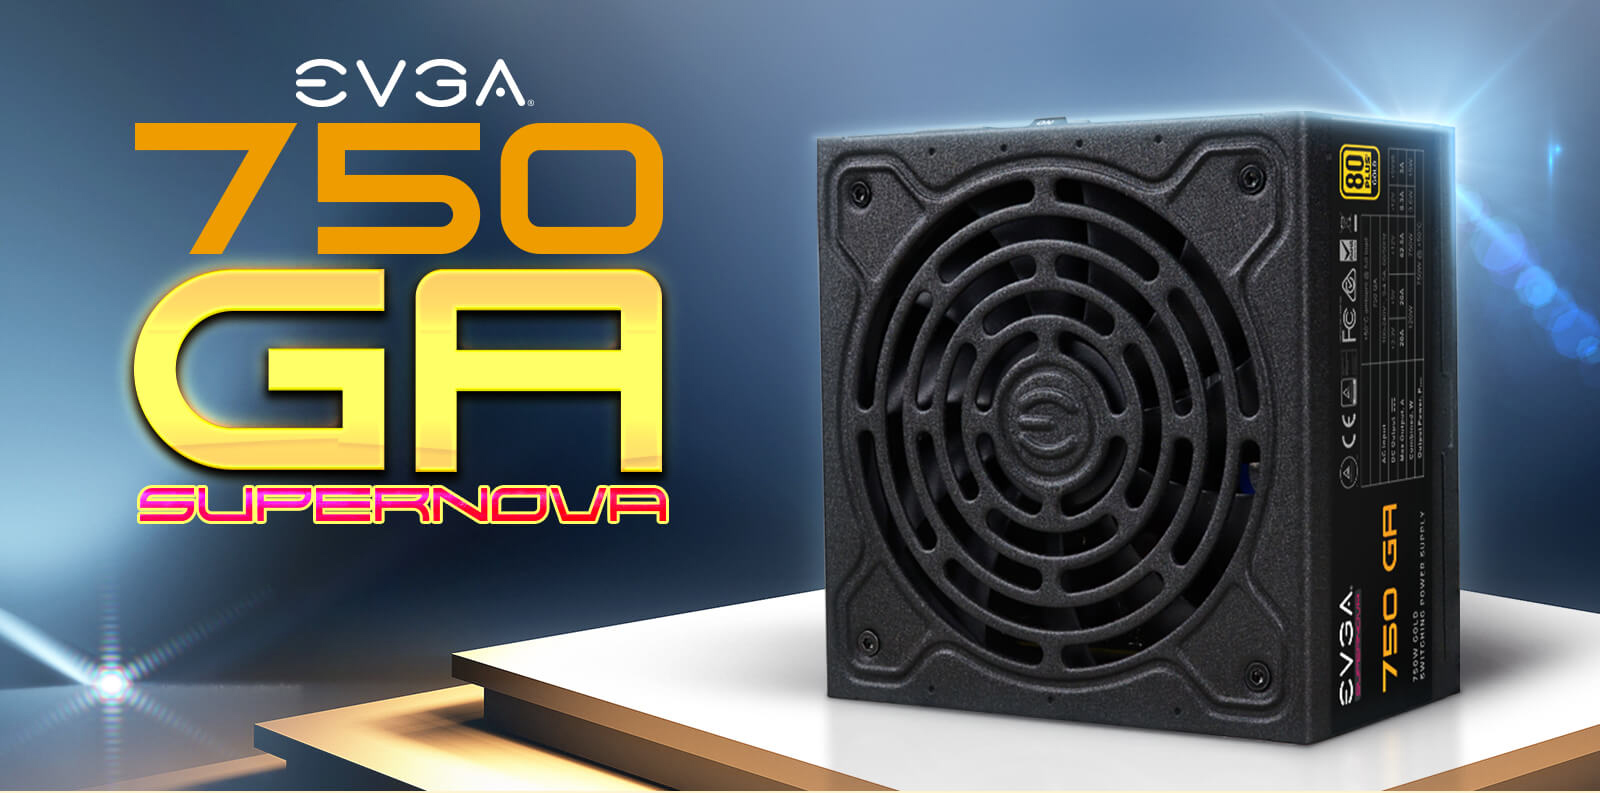 EVGA SuperNOVA 750 GA Fully Modular Power Supply facing forward and EVGA logo